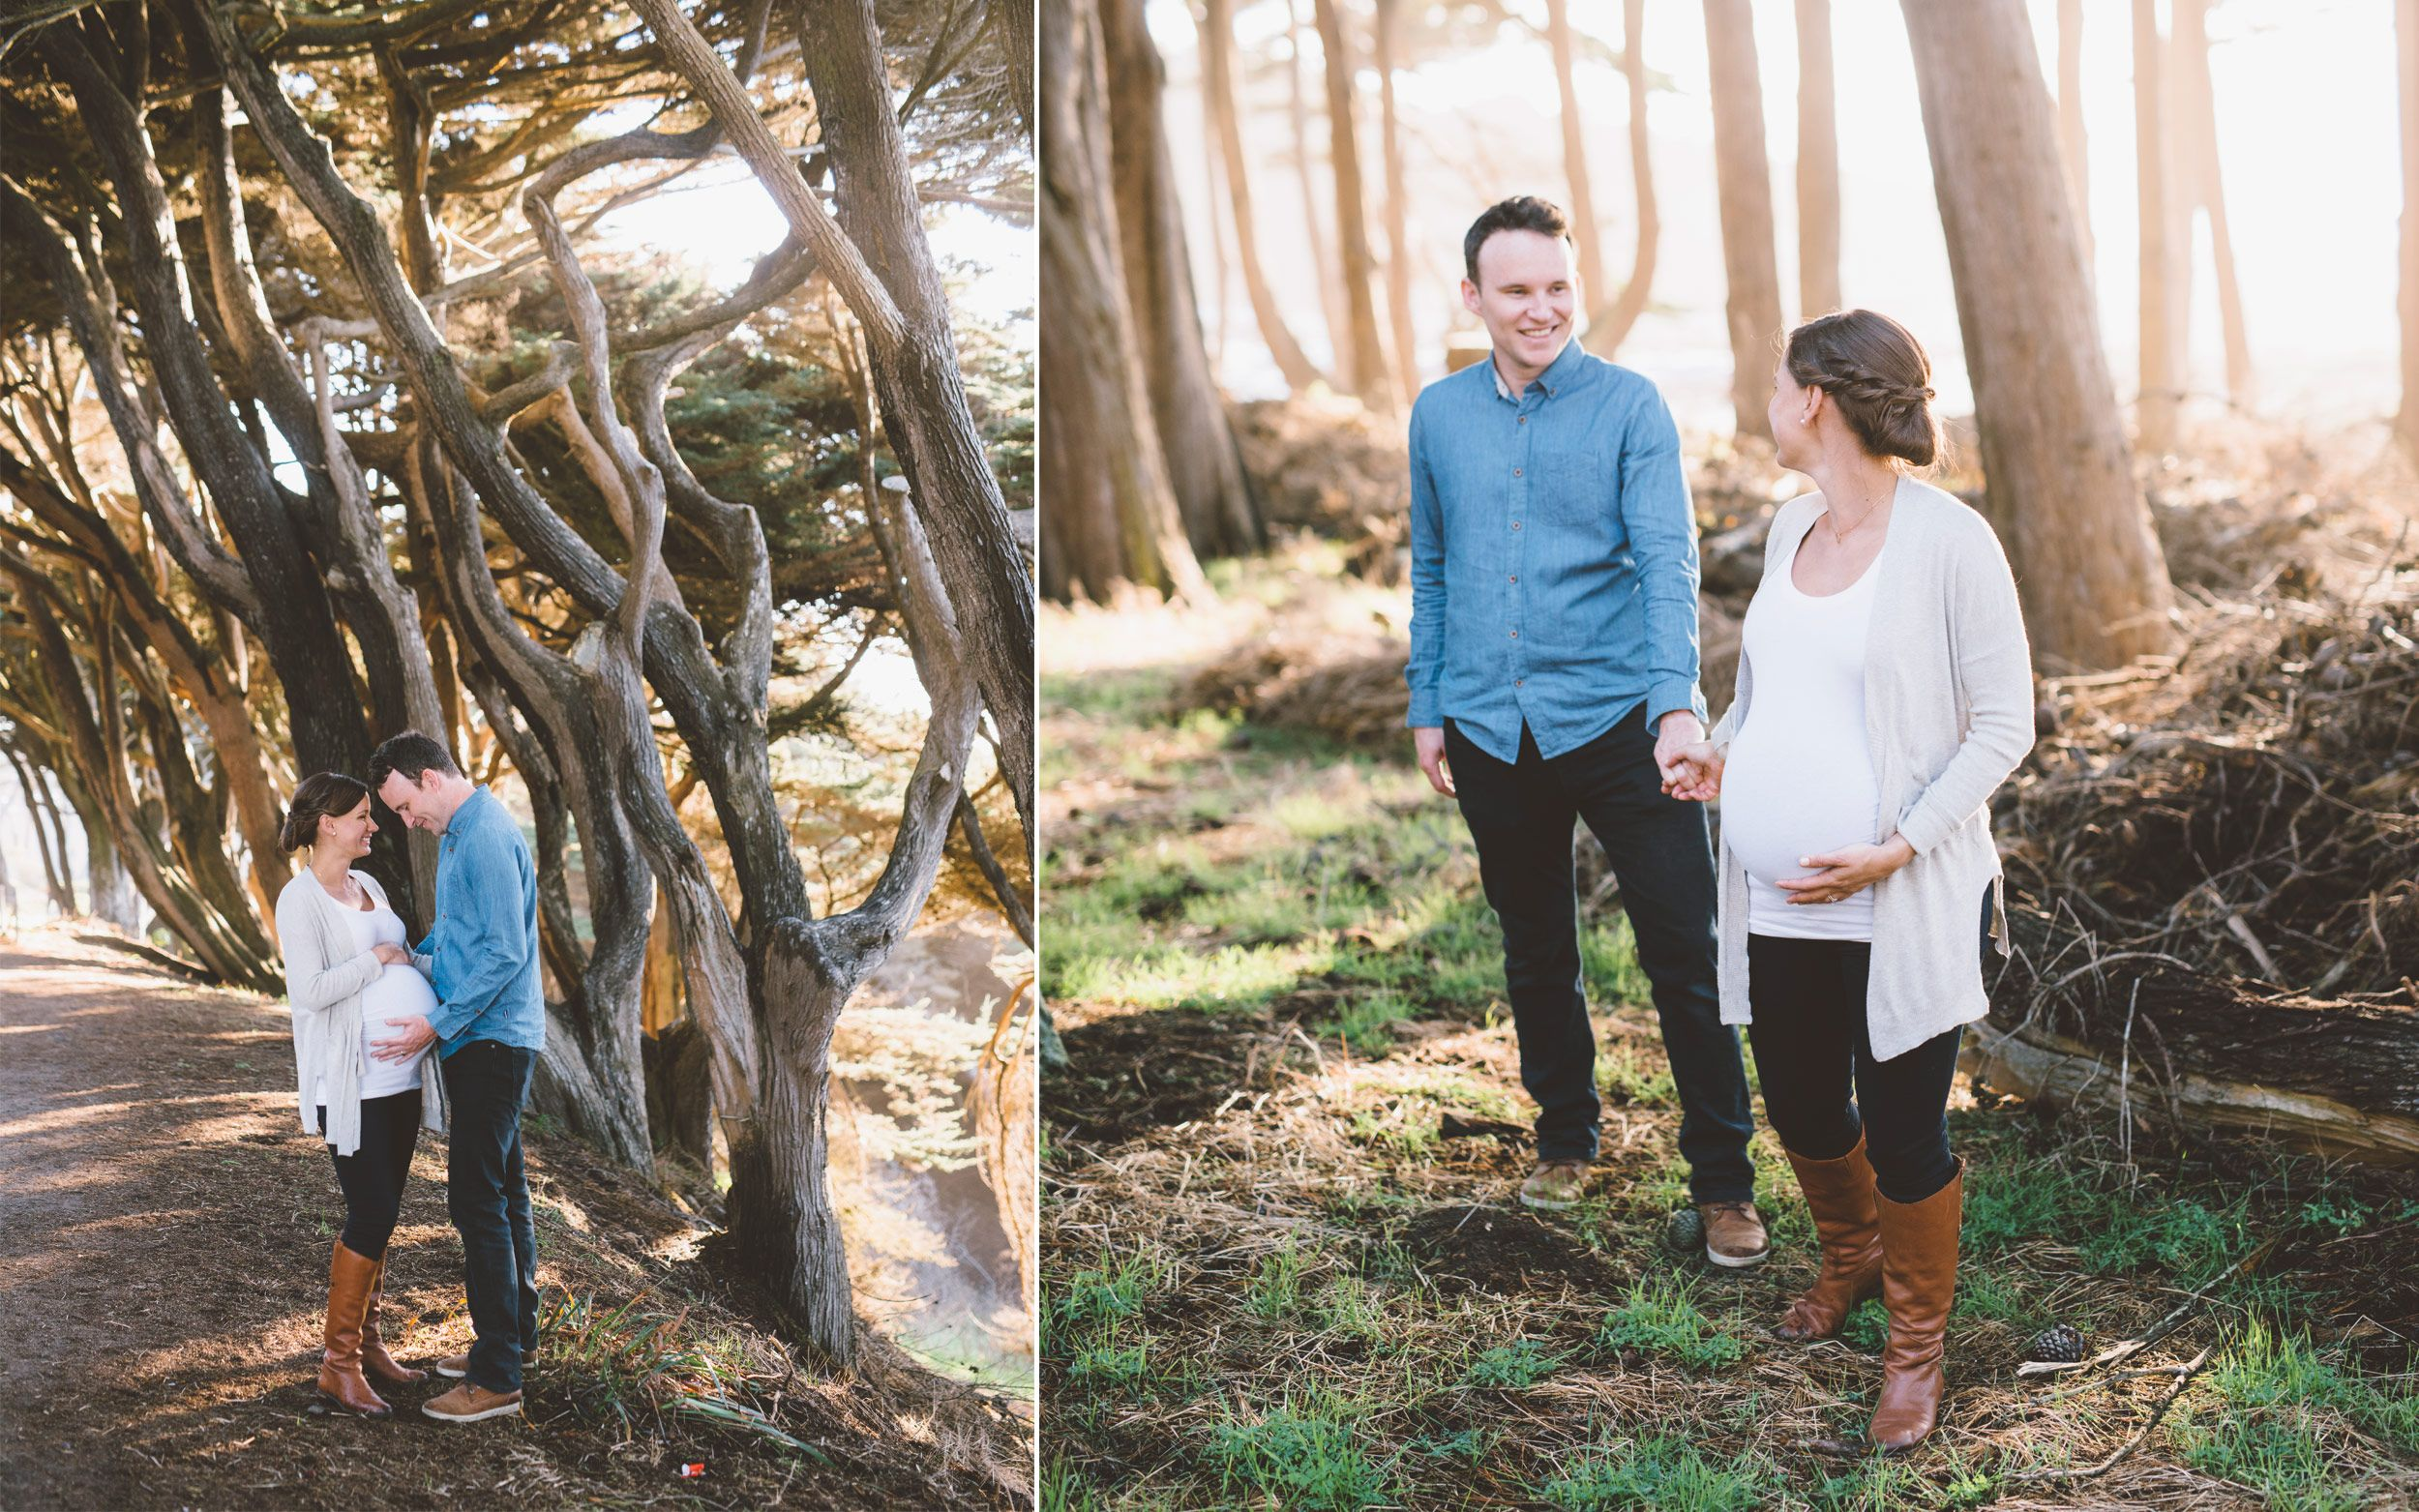 537056336b1fd Lands End San Francisco - Maternity Photo Session. Clothing and posing  ideas for maternity photoshoot.